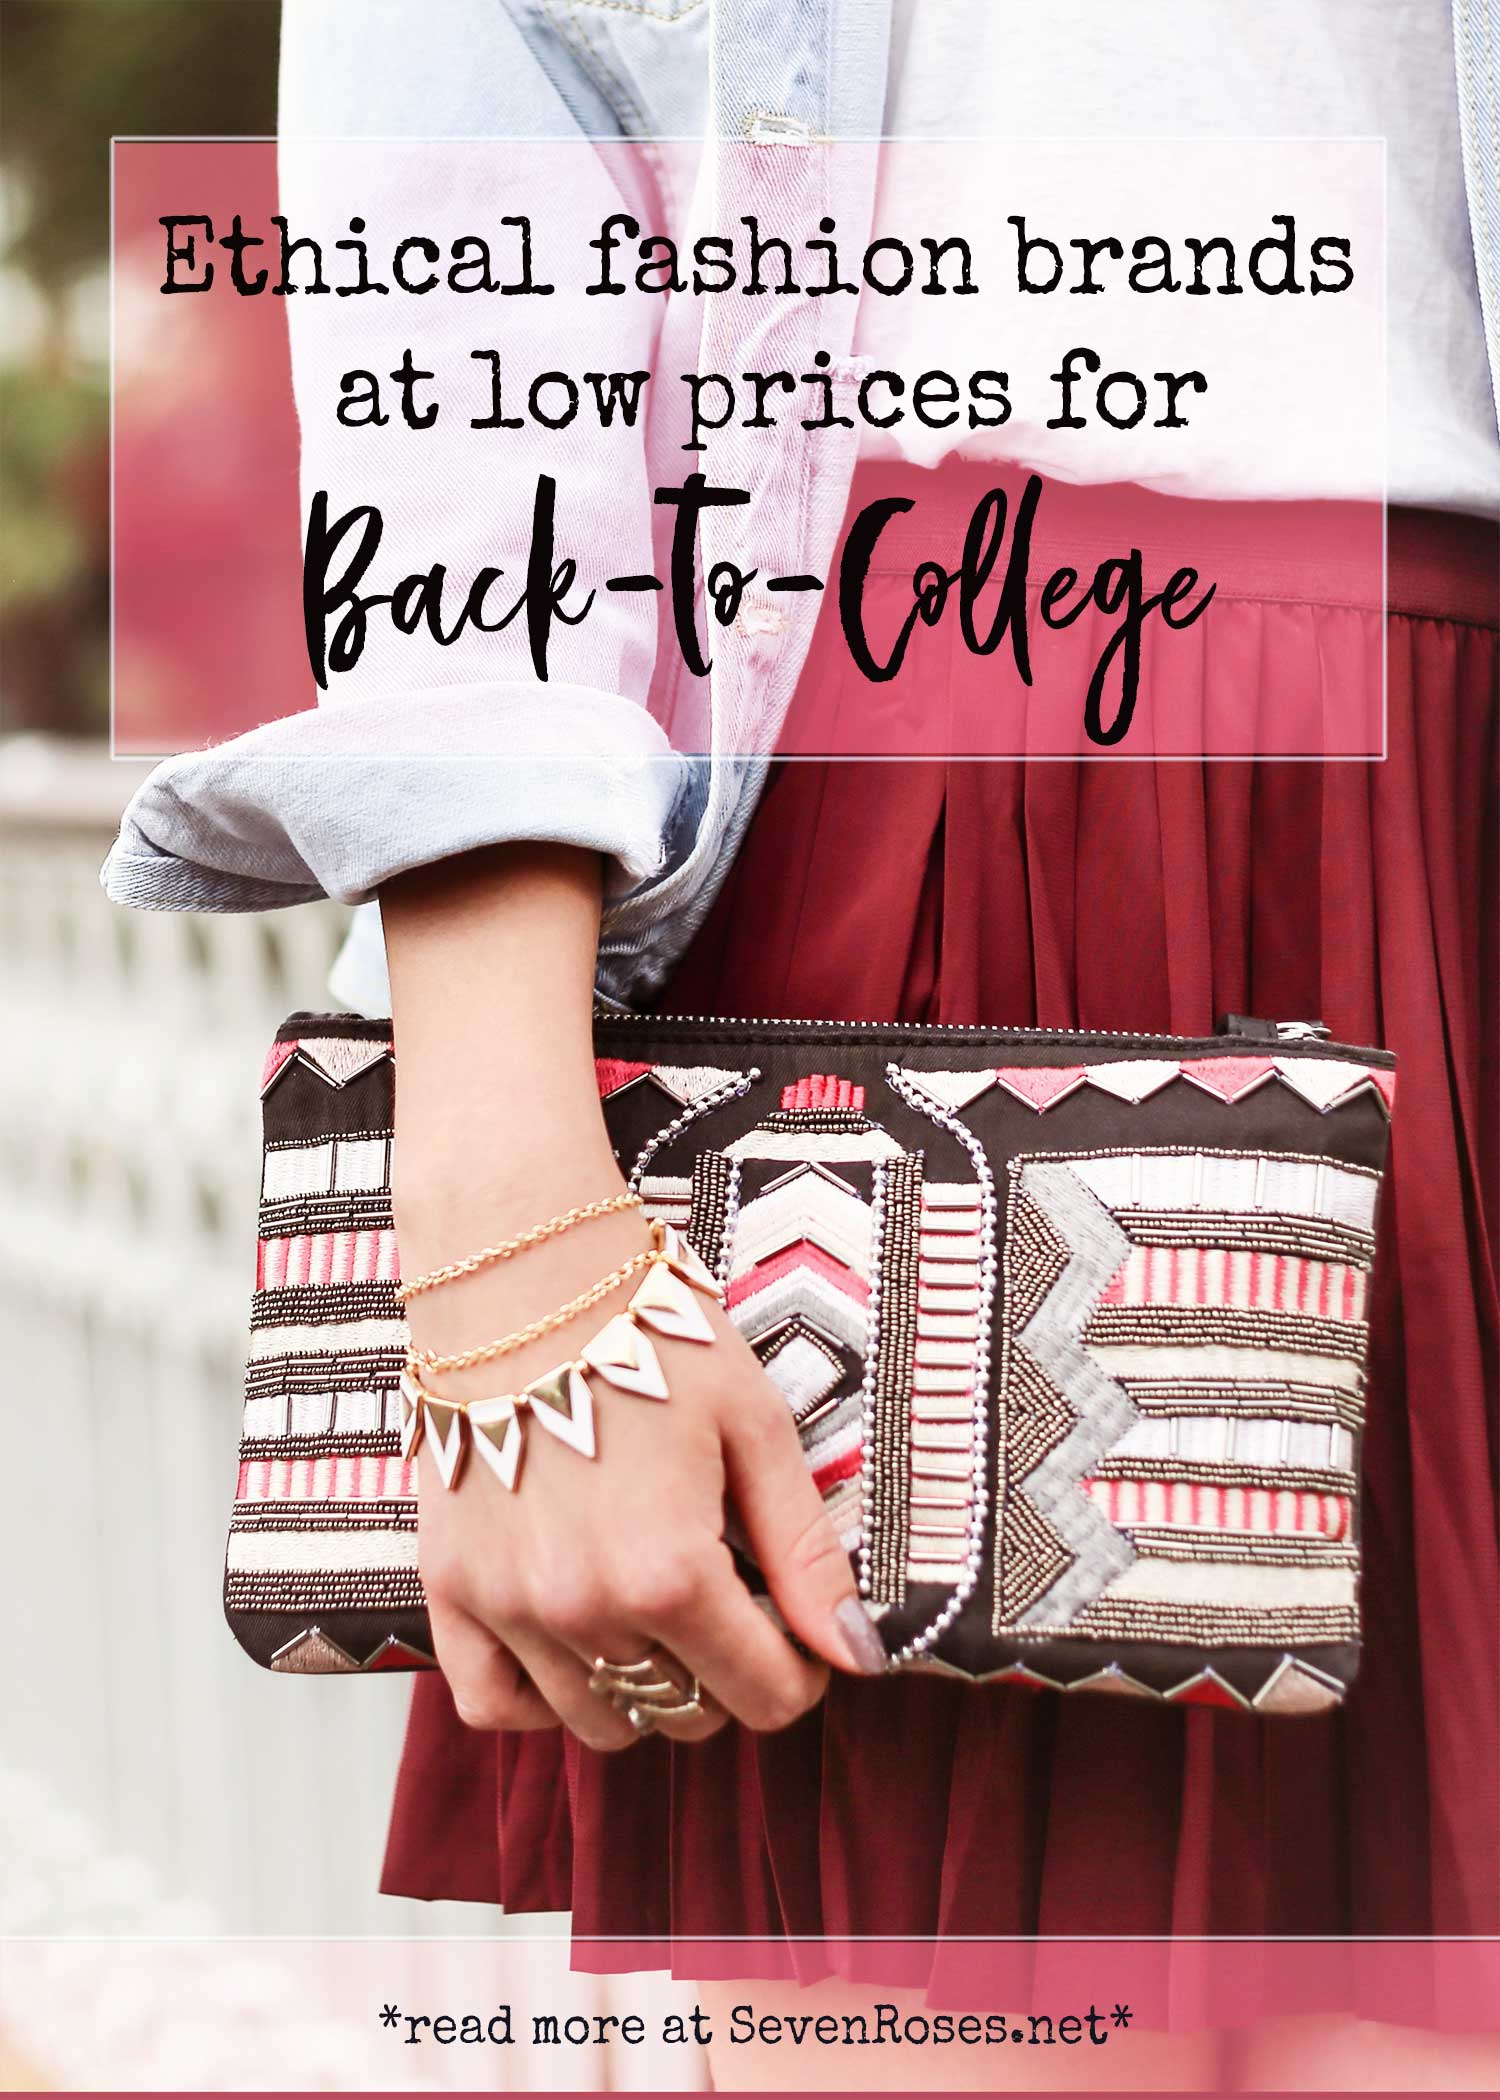 Ethical fashion brands at low prices for back to college